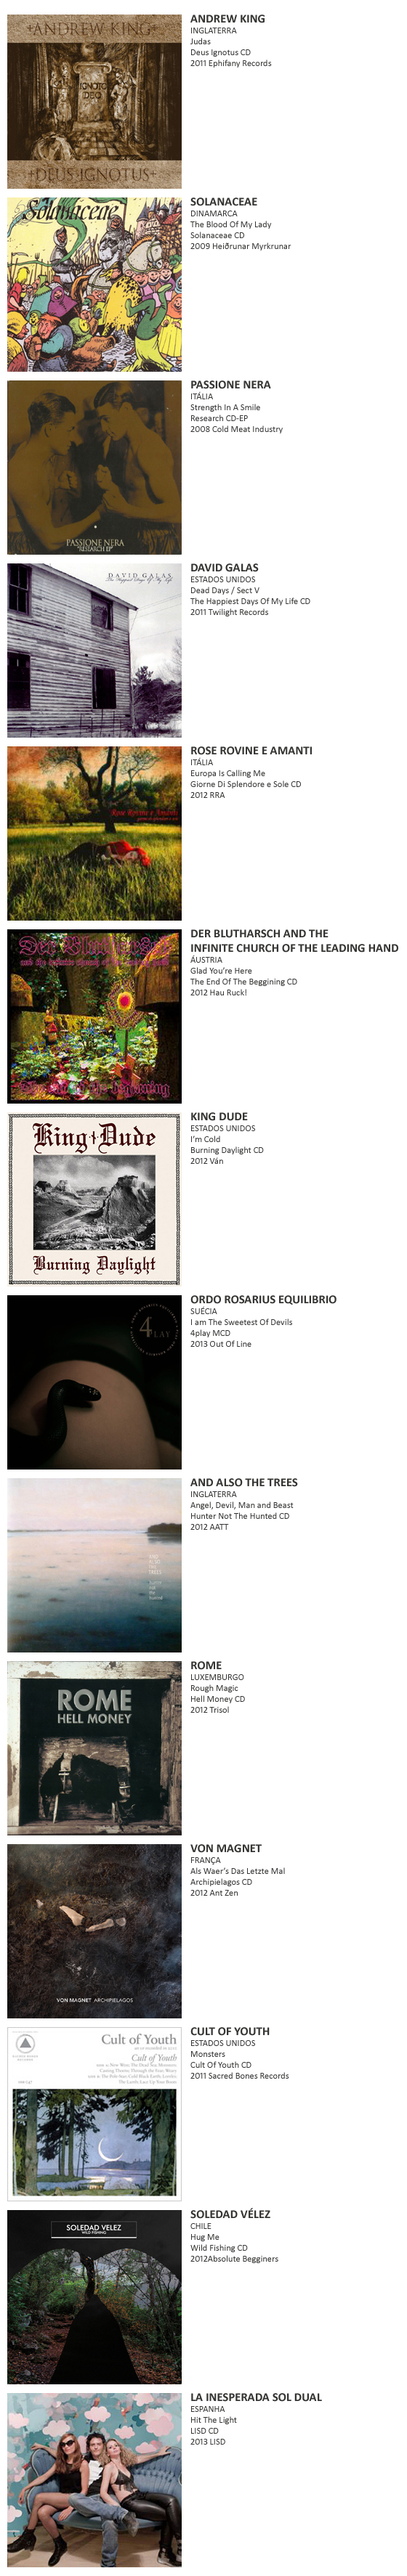 ANDREW KING, SOLANACEAE, PASSIONE NERA,  DAVID GALAS, ROSE ROVINE E AMANTI , DER BLUTHARSCH AND THE INFINITE CHURCH OF THE LEADING HAND, KING DUDE, ORDO ROSARIUS EQUILIBRIO, AND ALSO THE TREES,  ROME, VON MAGNET, CULT OF YOUTH, SOLEAD VÉLEZ, LA INESPERADA SOL DUAL